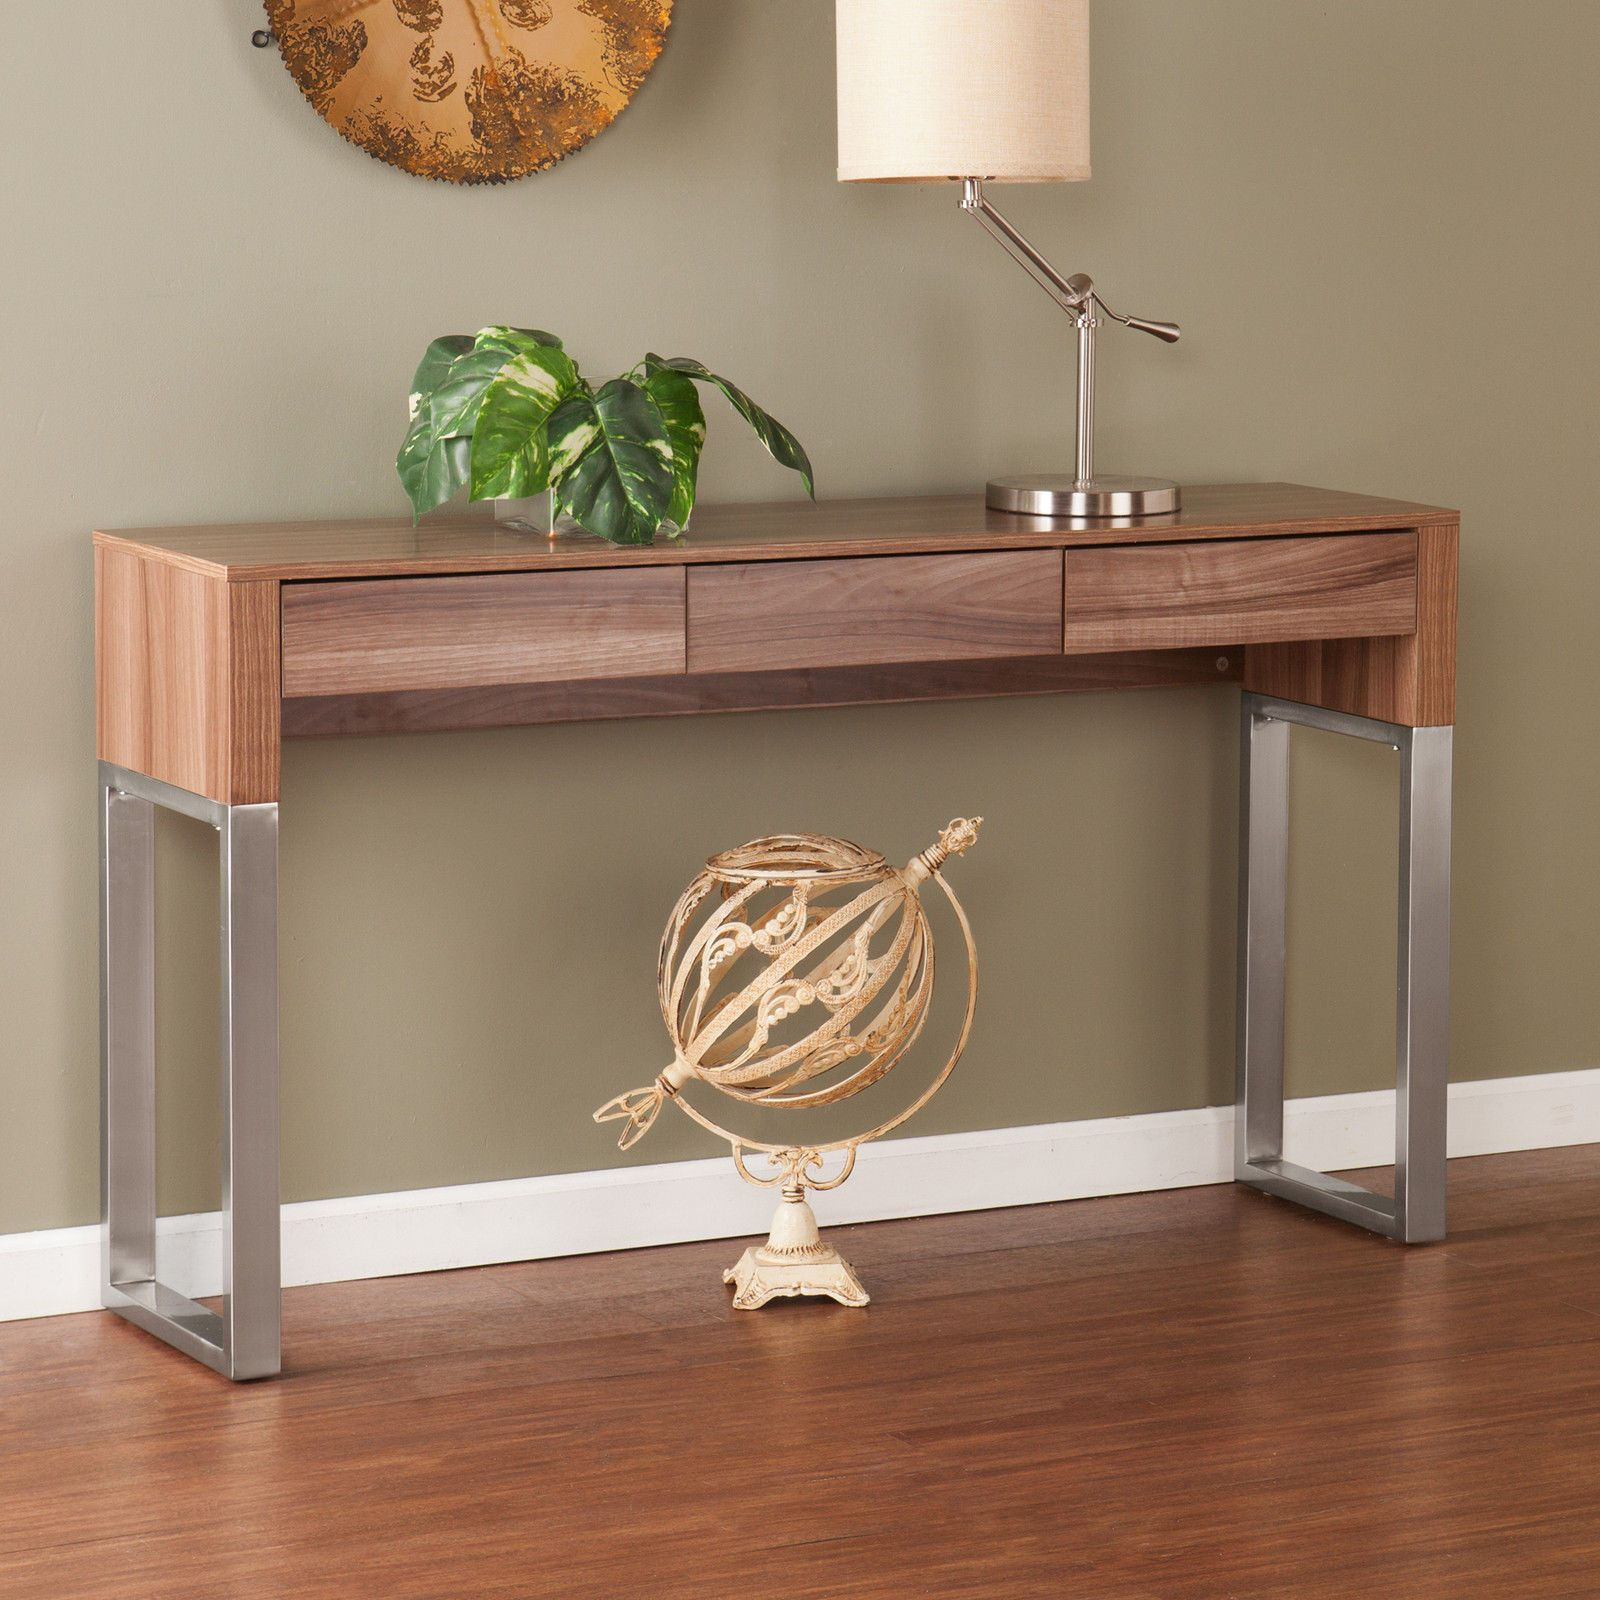 10 High End Design Coffee Tables Modern Console Tables Small